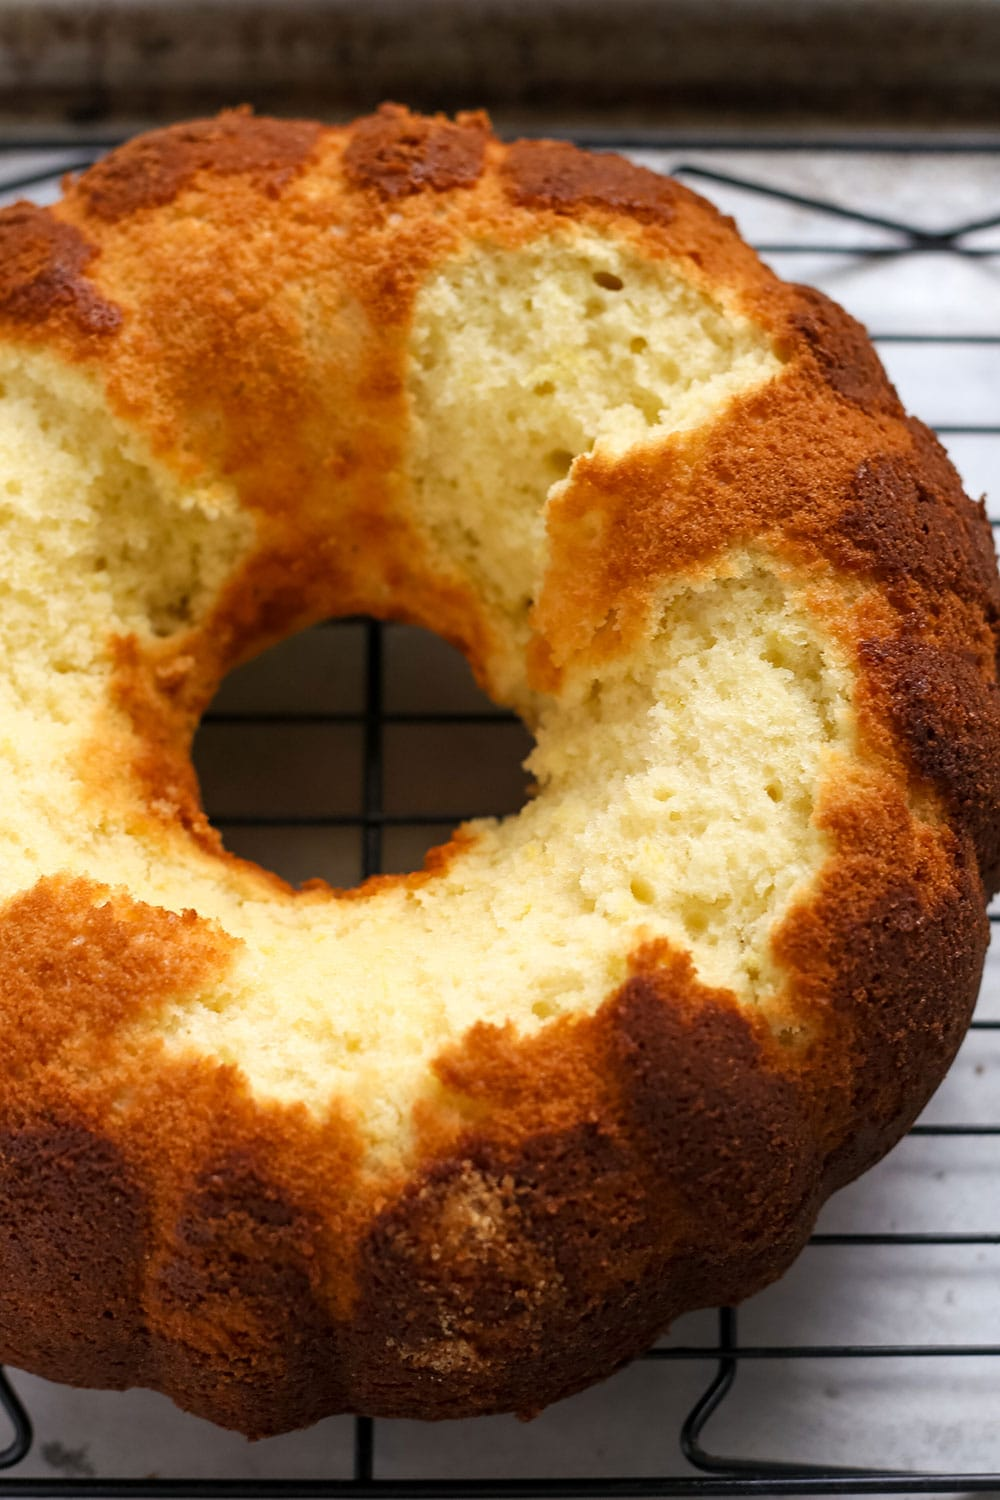 Bundt cake that got stuck to the pan and ruined